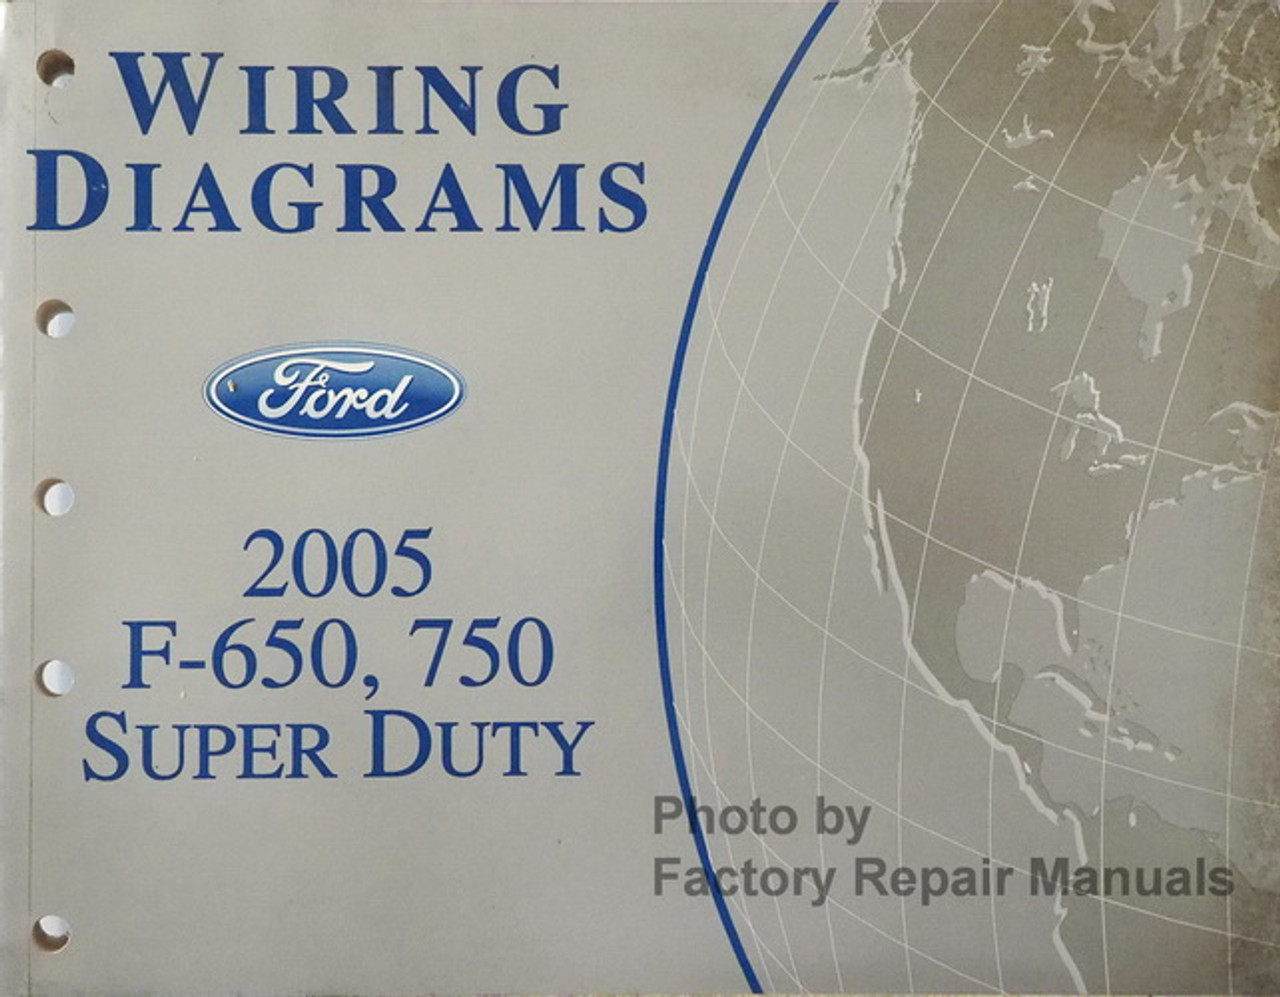 2005 Ford F650 F750 Truck Electrical Wiring Diagrams Original Manual -  Factory Repair Manuals | Ford F650 Wiring |  | Factory Repair Manuals